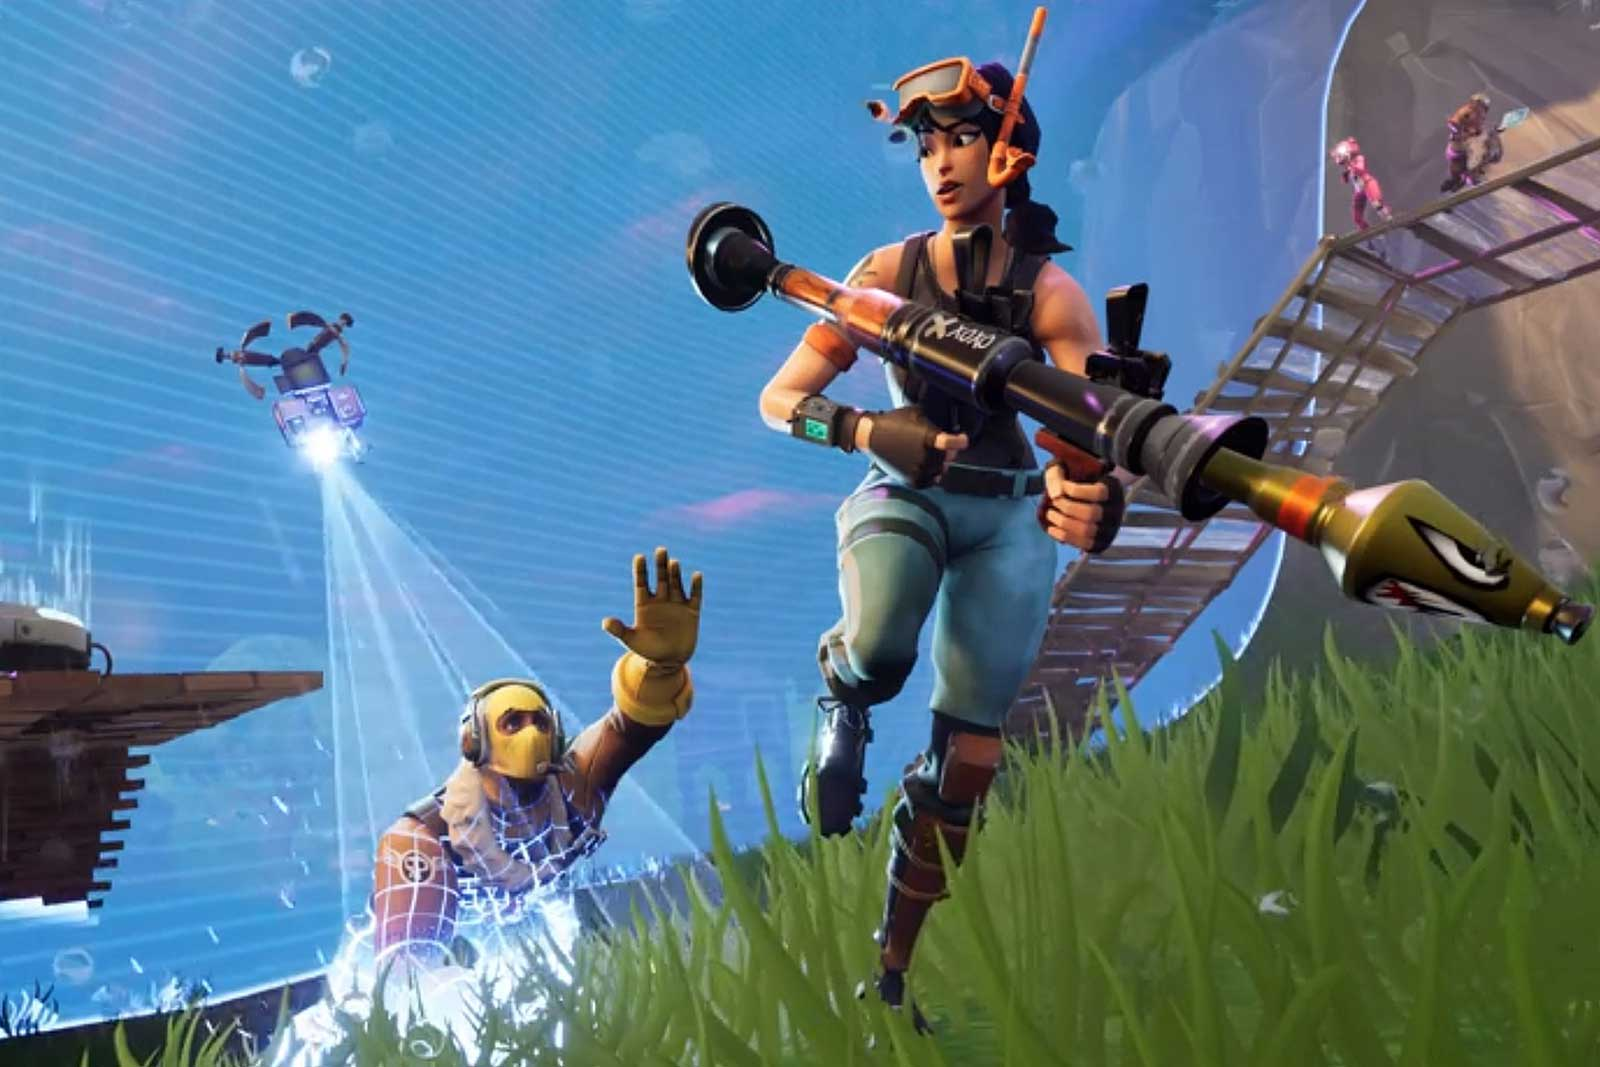 Fortnite' for Switch thankfully includes native voice chat